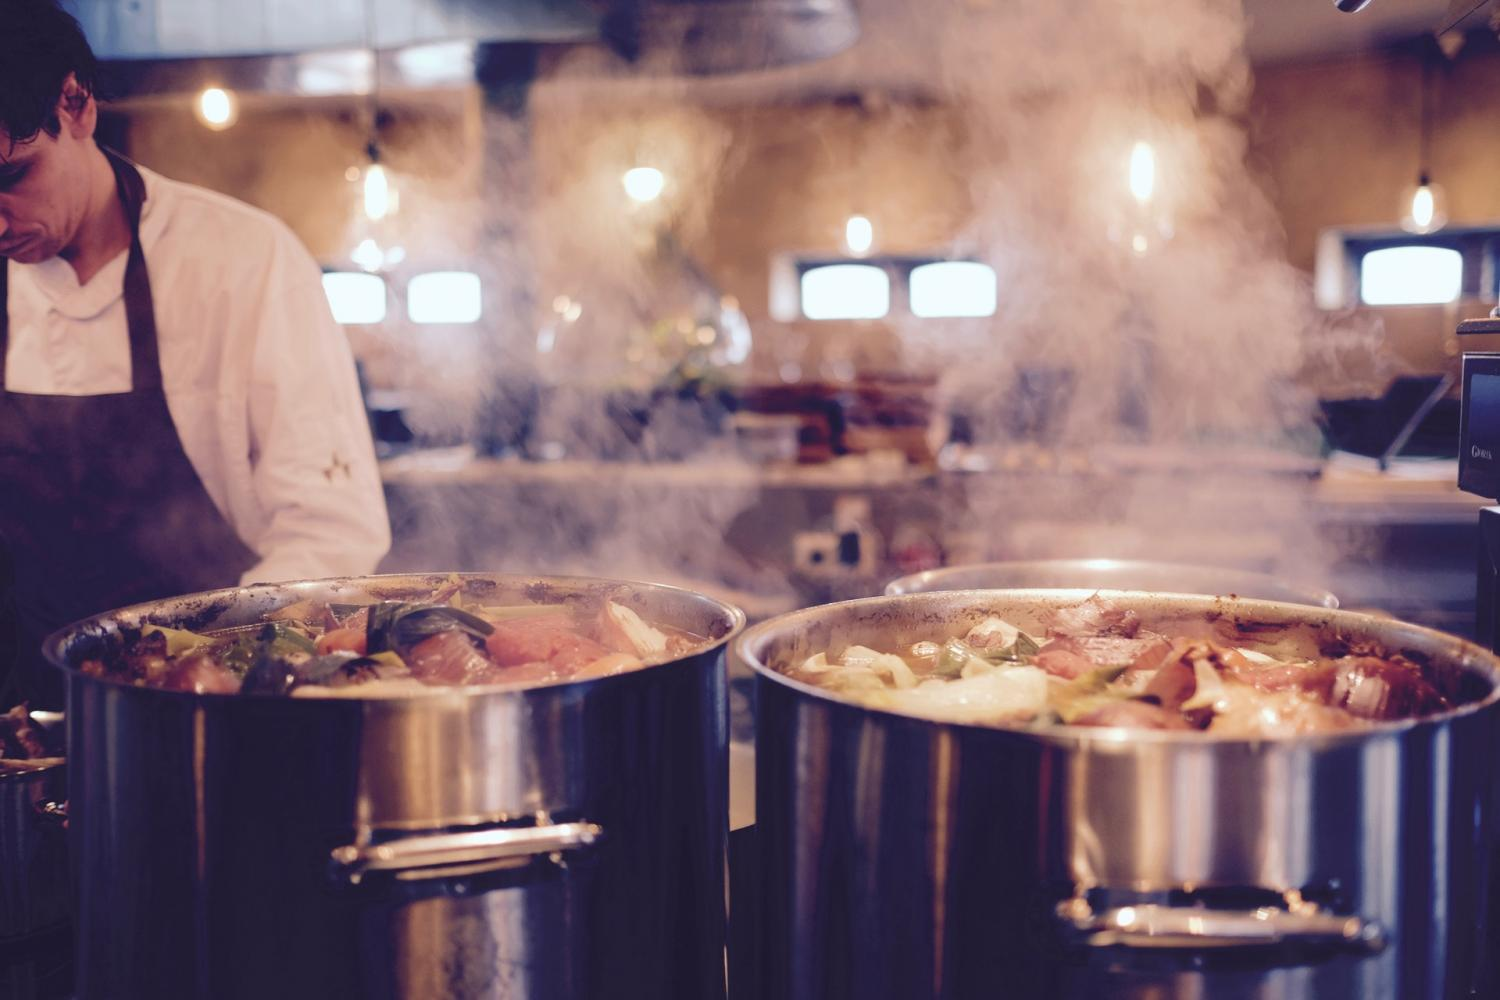 prevent food waste in commercial kitchens